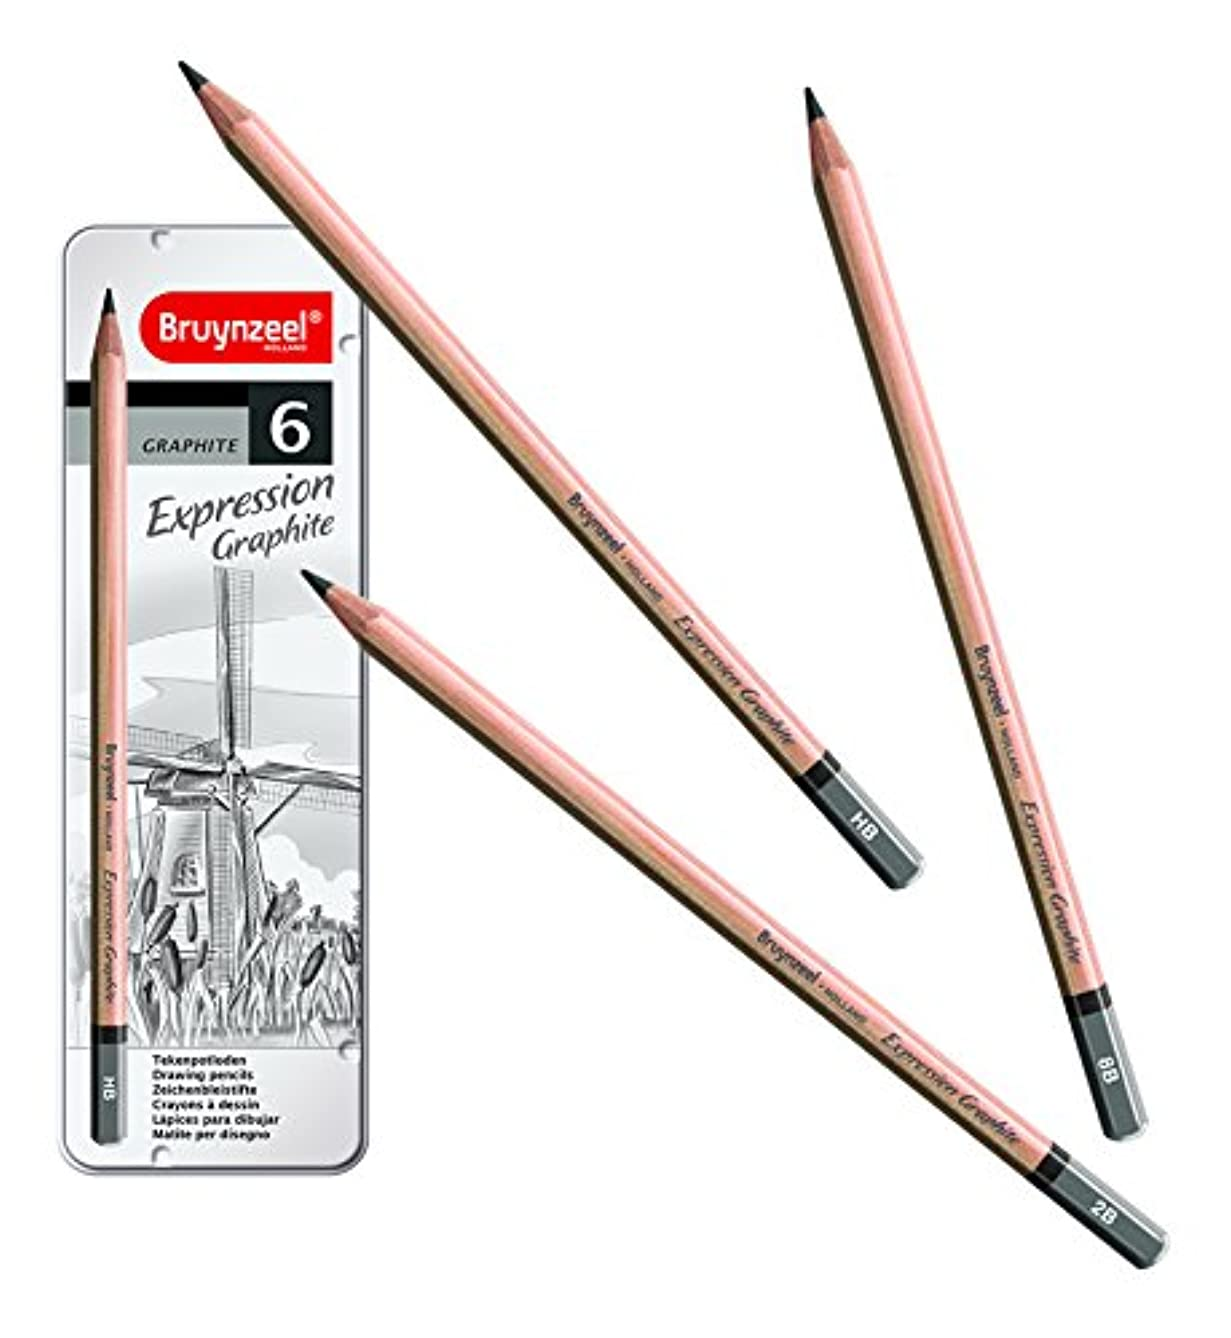 Bruynzeel Expression Graphite Drawing Pencils (Set Of 6 In Metal Tin Including Hb, 1B, 2B, 4B, 6B And 8B)